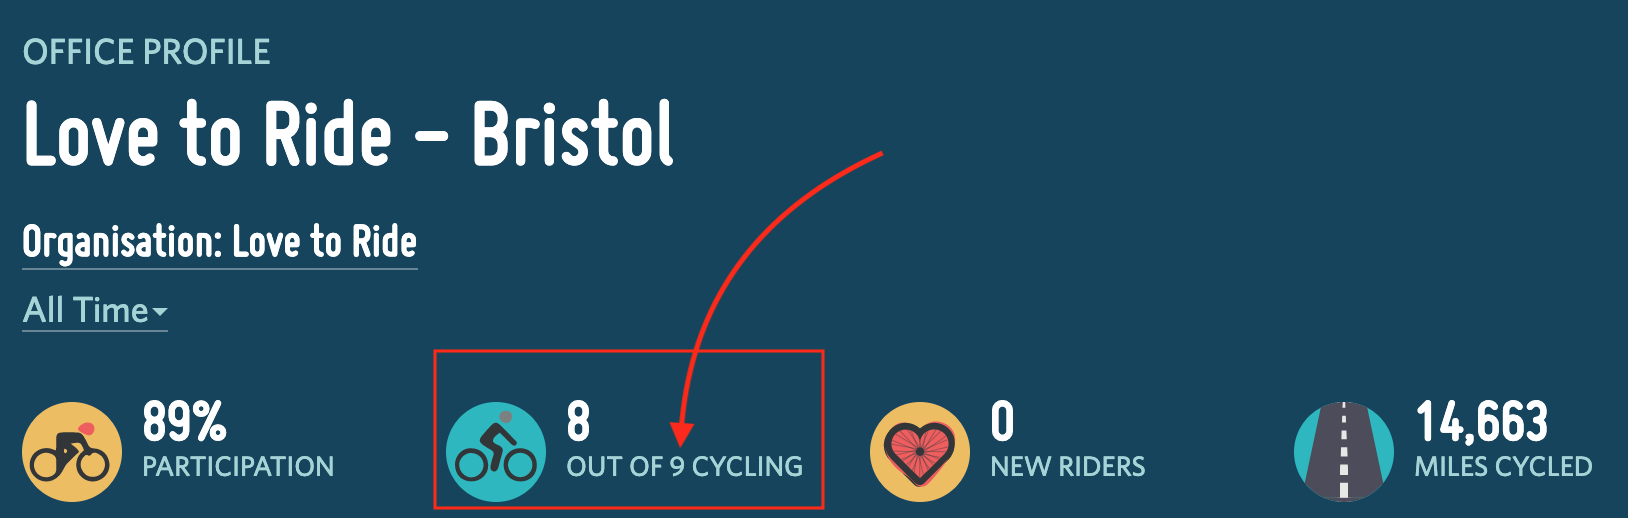 A screenshot showing the staff count of the Love to Ride office on their profile